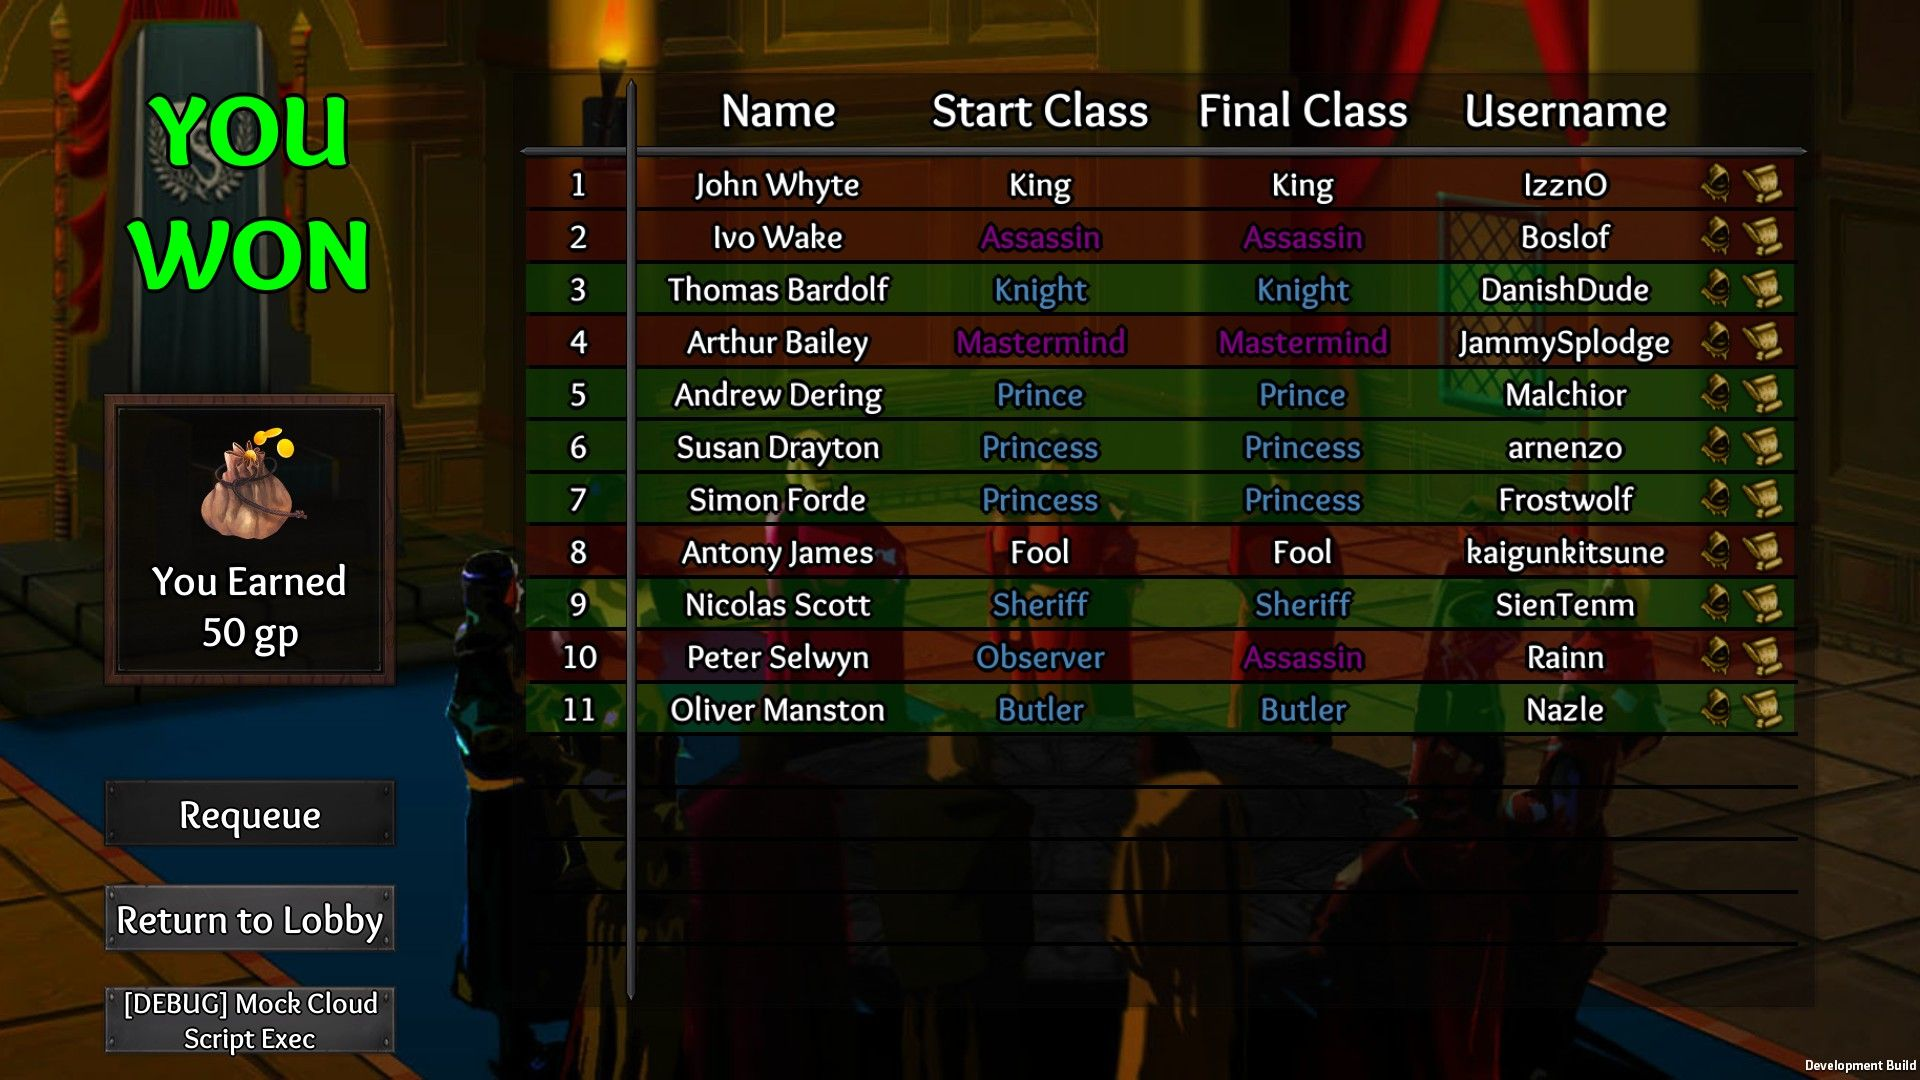 More on Throne of Lies Game ClosedAlpha Final class